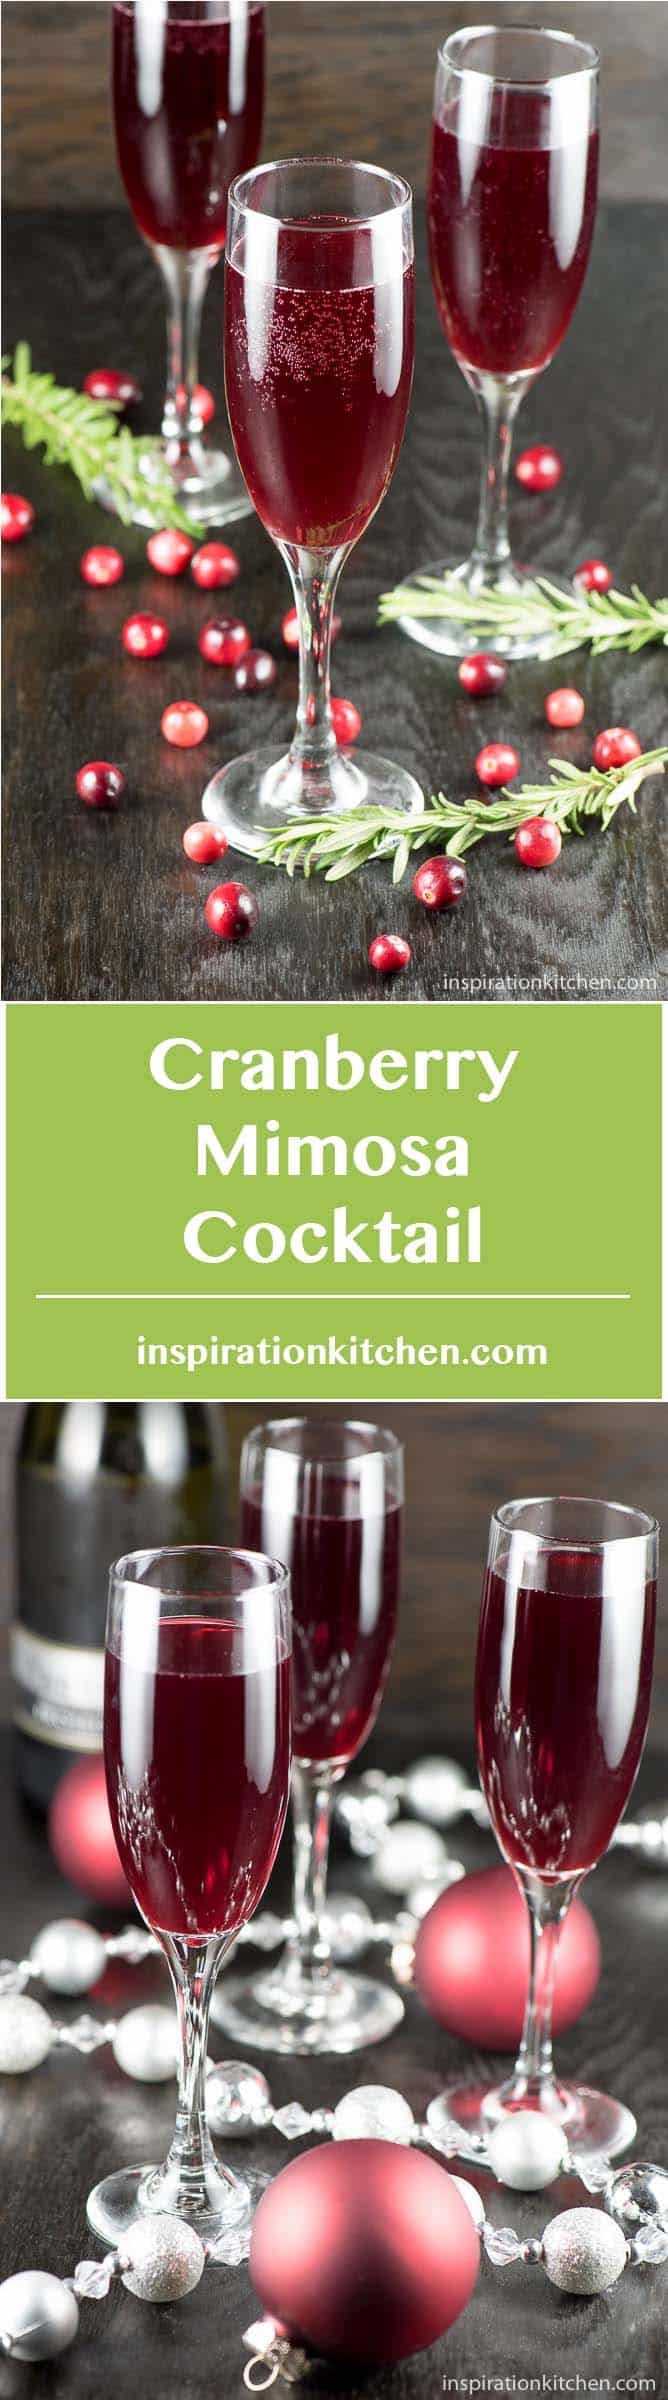 cranberry-mimosa-cocktail-inspiration-kitchen-collage